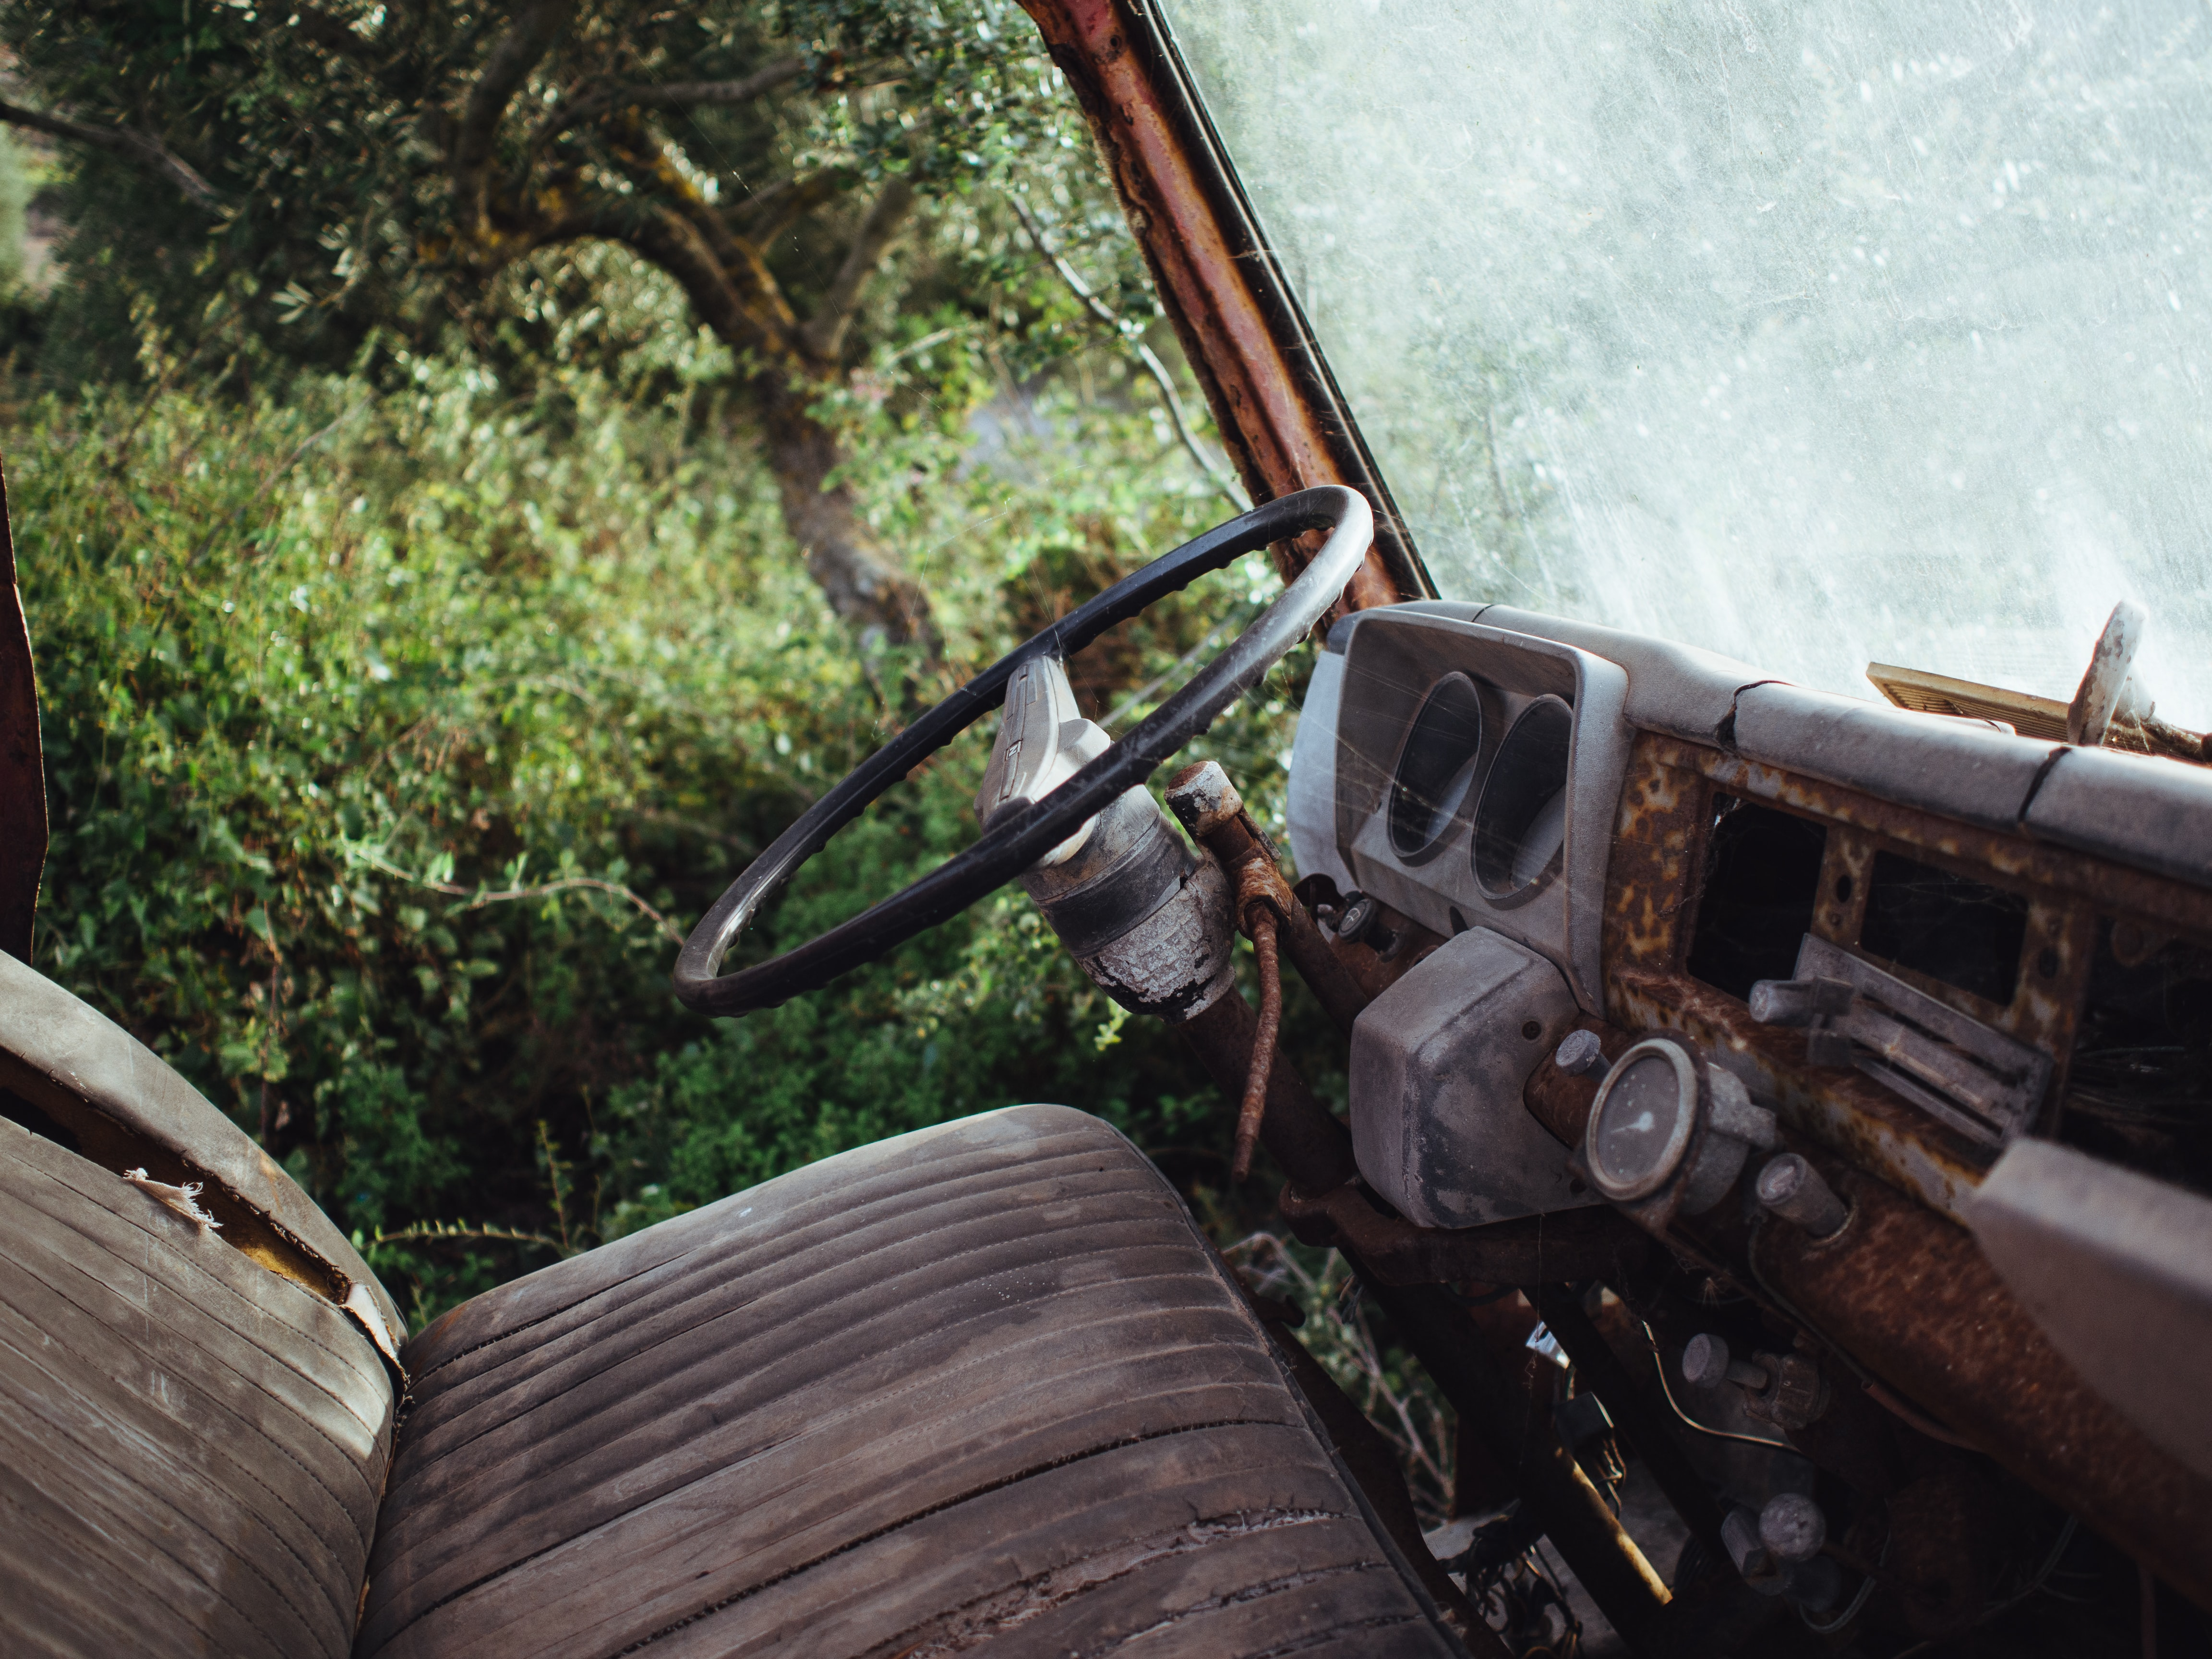 Interior shot of rusty old vehicle with worn seats parked near trees